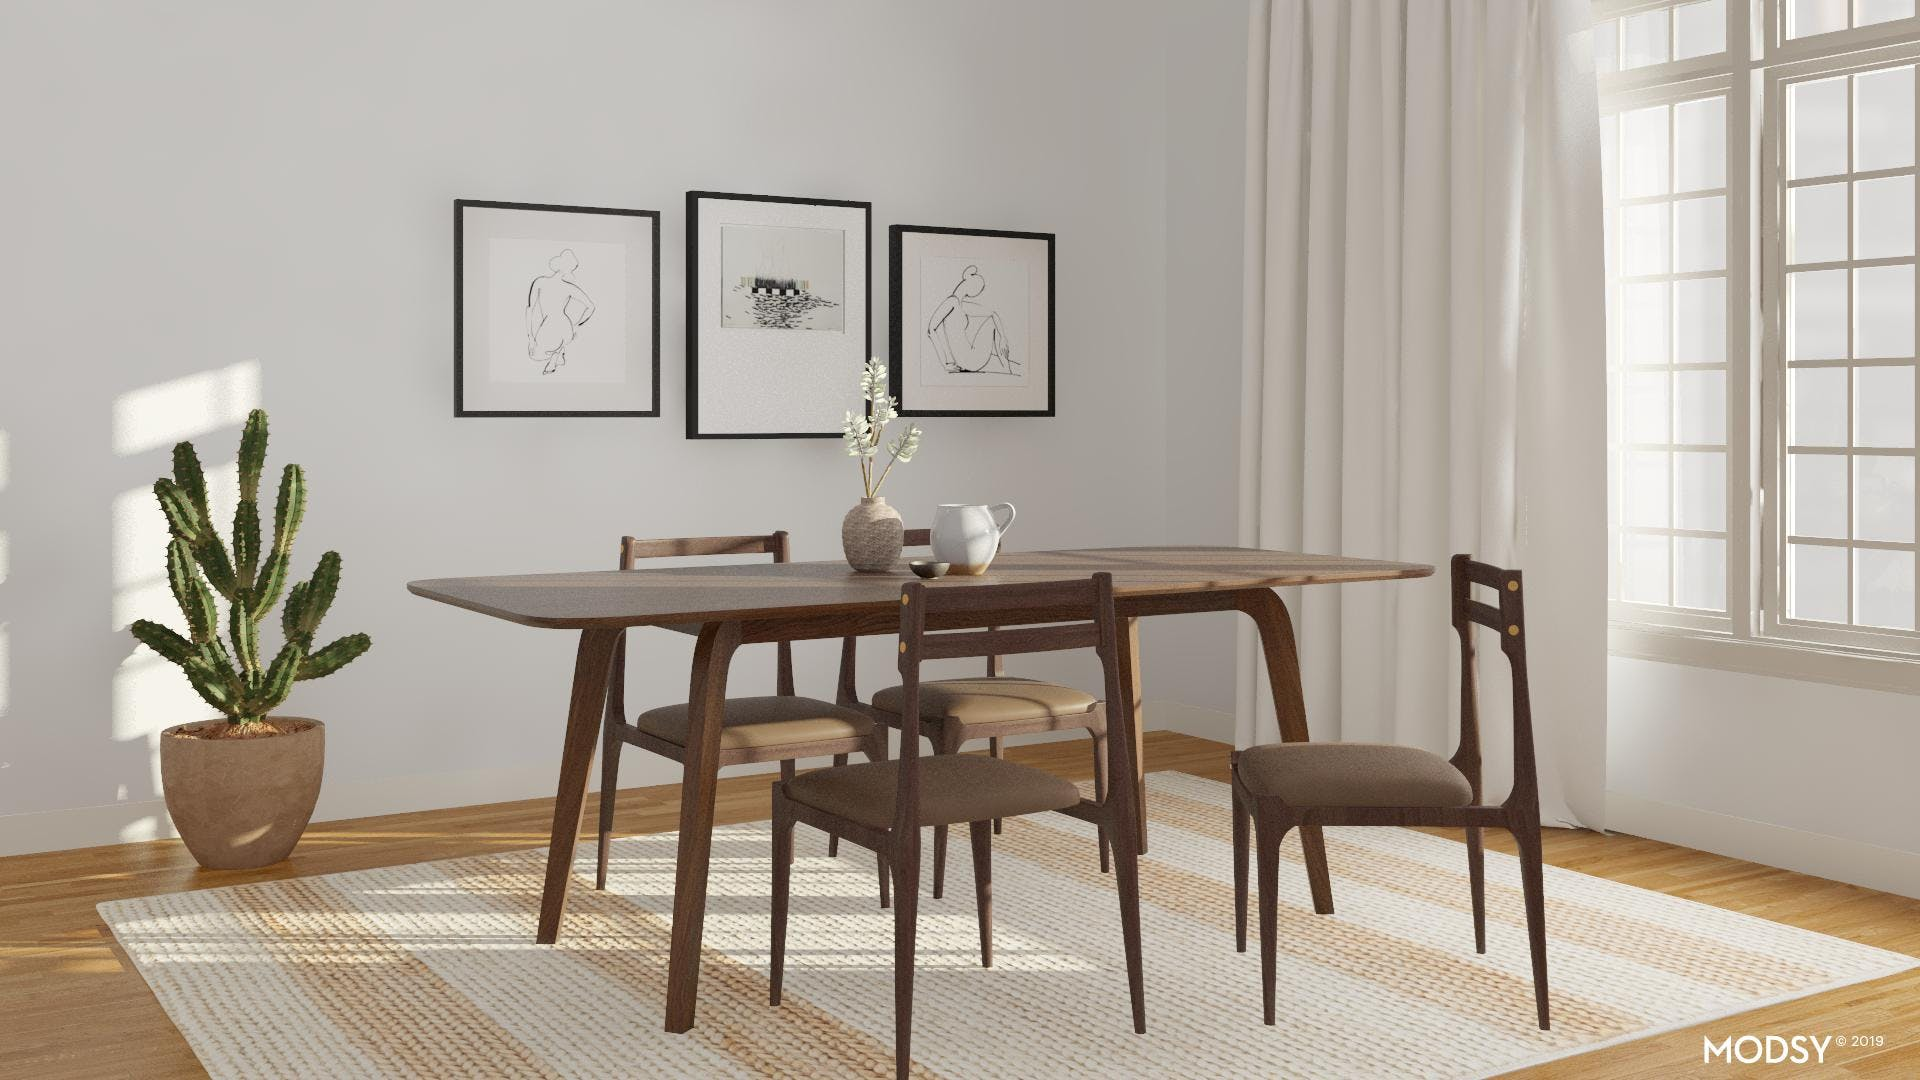 Modern, Minimal, and Neutral Dining Room